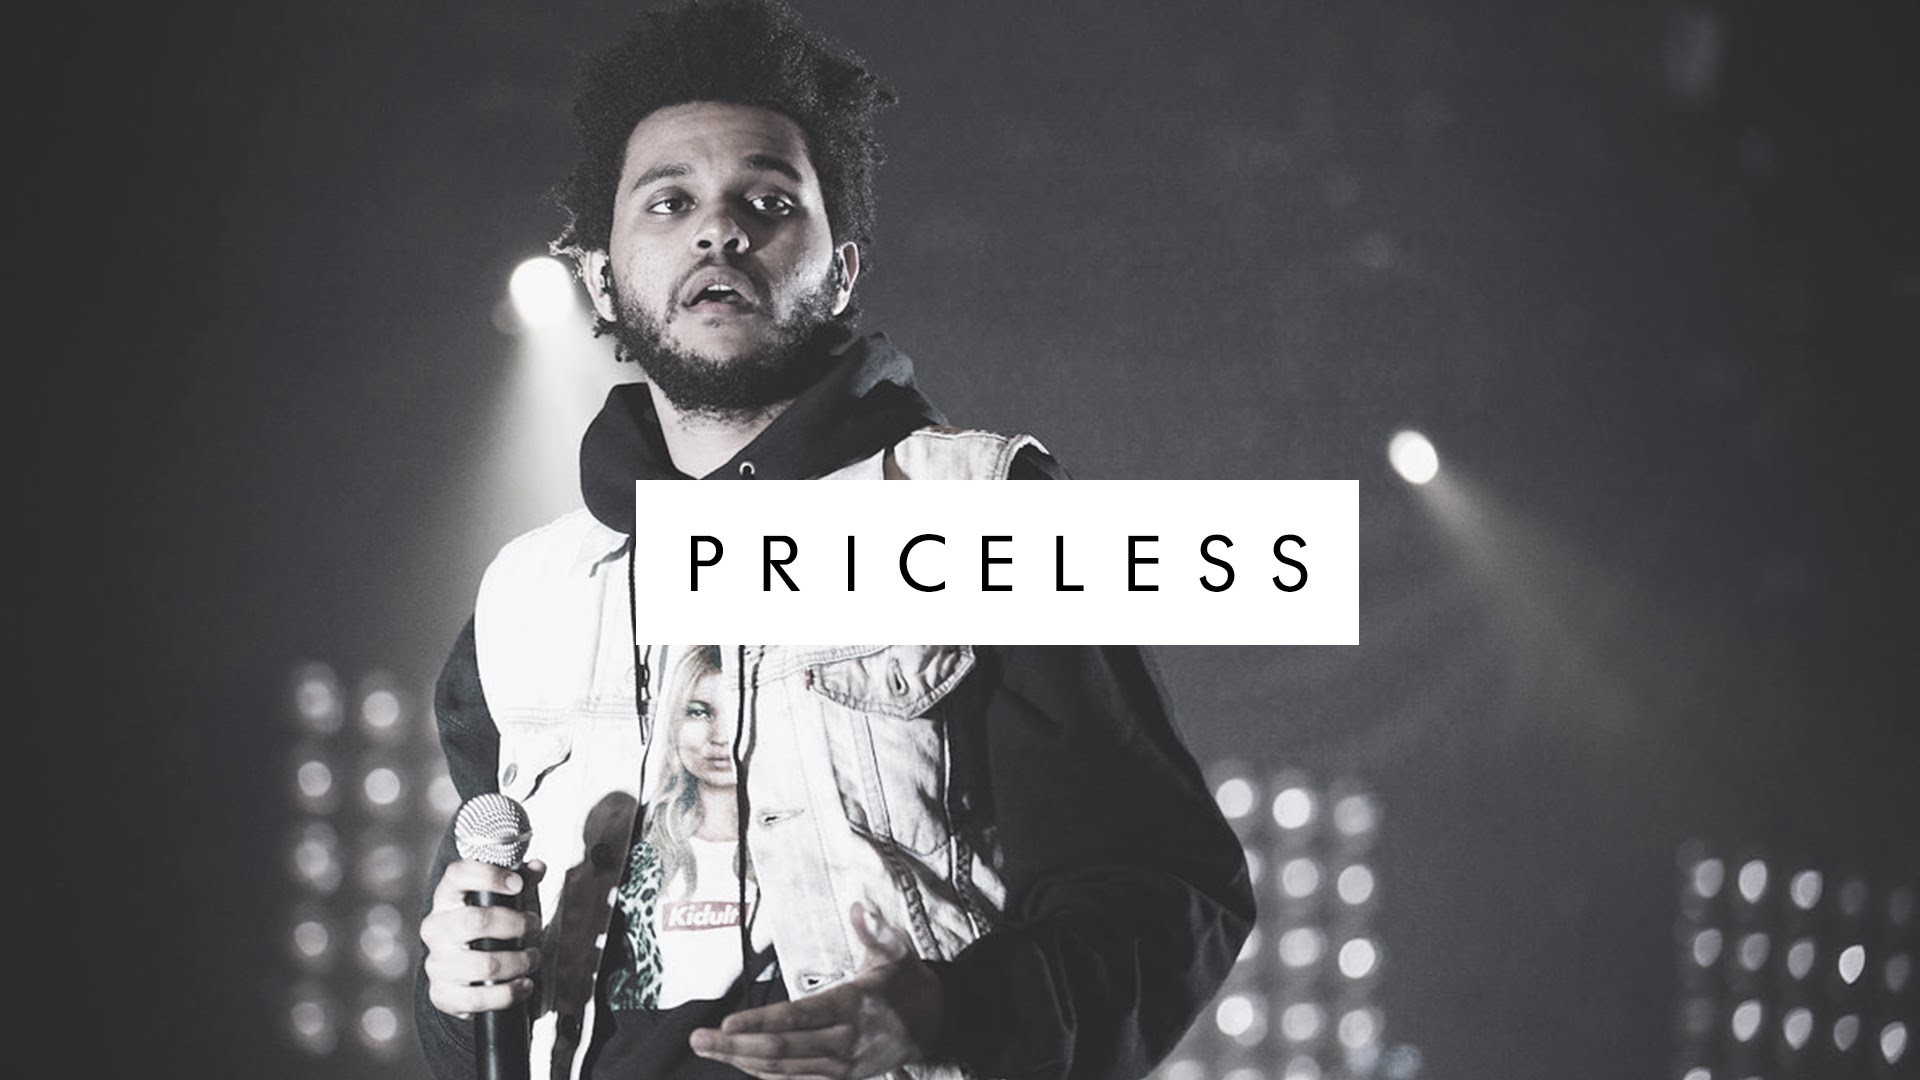 Drake x Partynextdoor x The weeknd Type Beat – Priceless (Prod. By Accent  beats) – YouTube